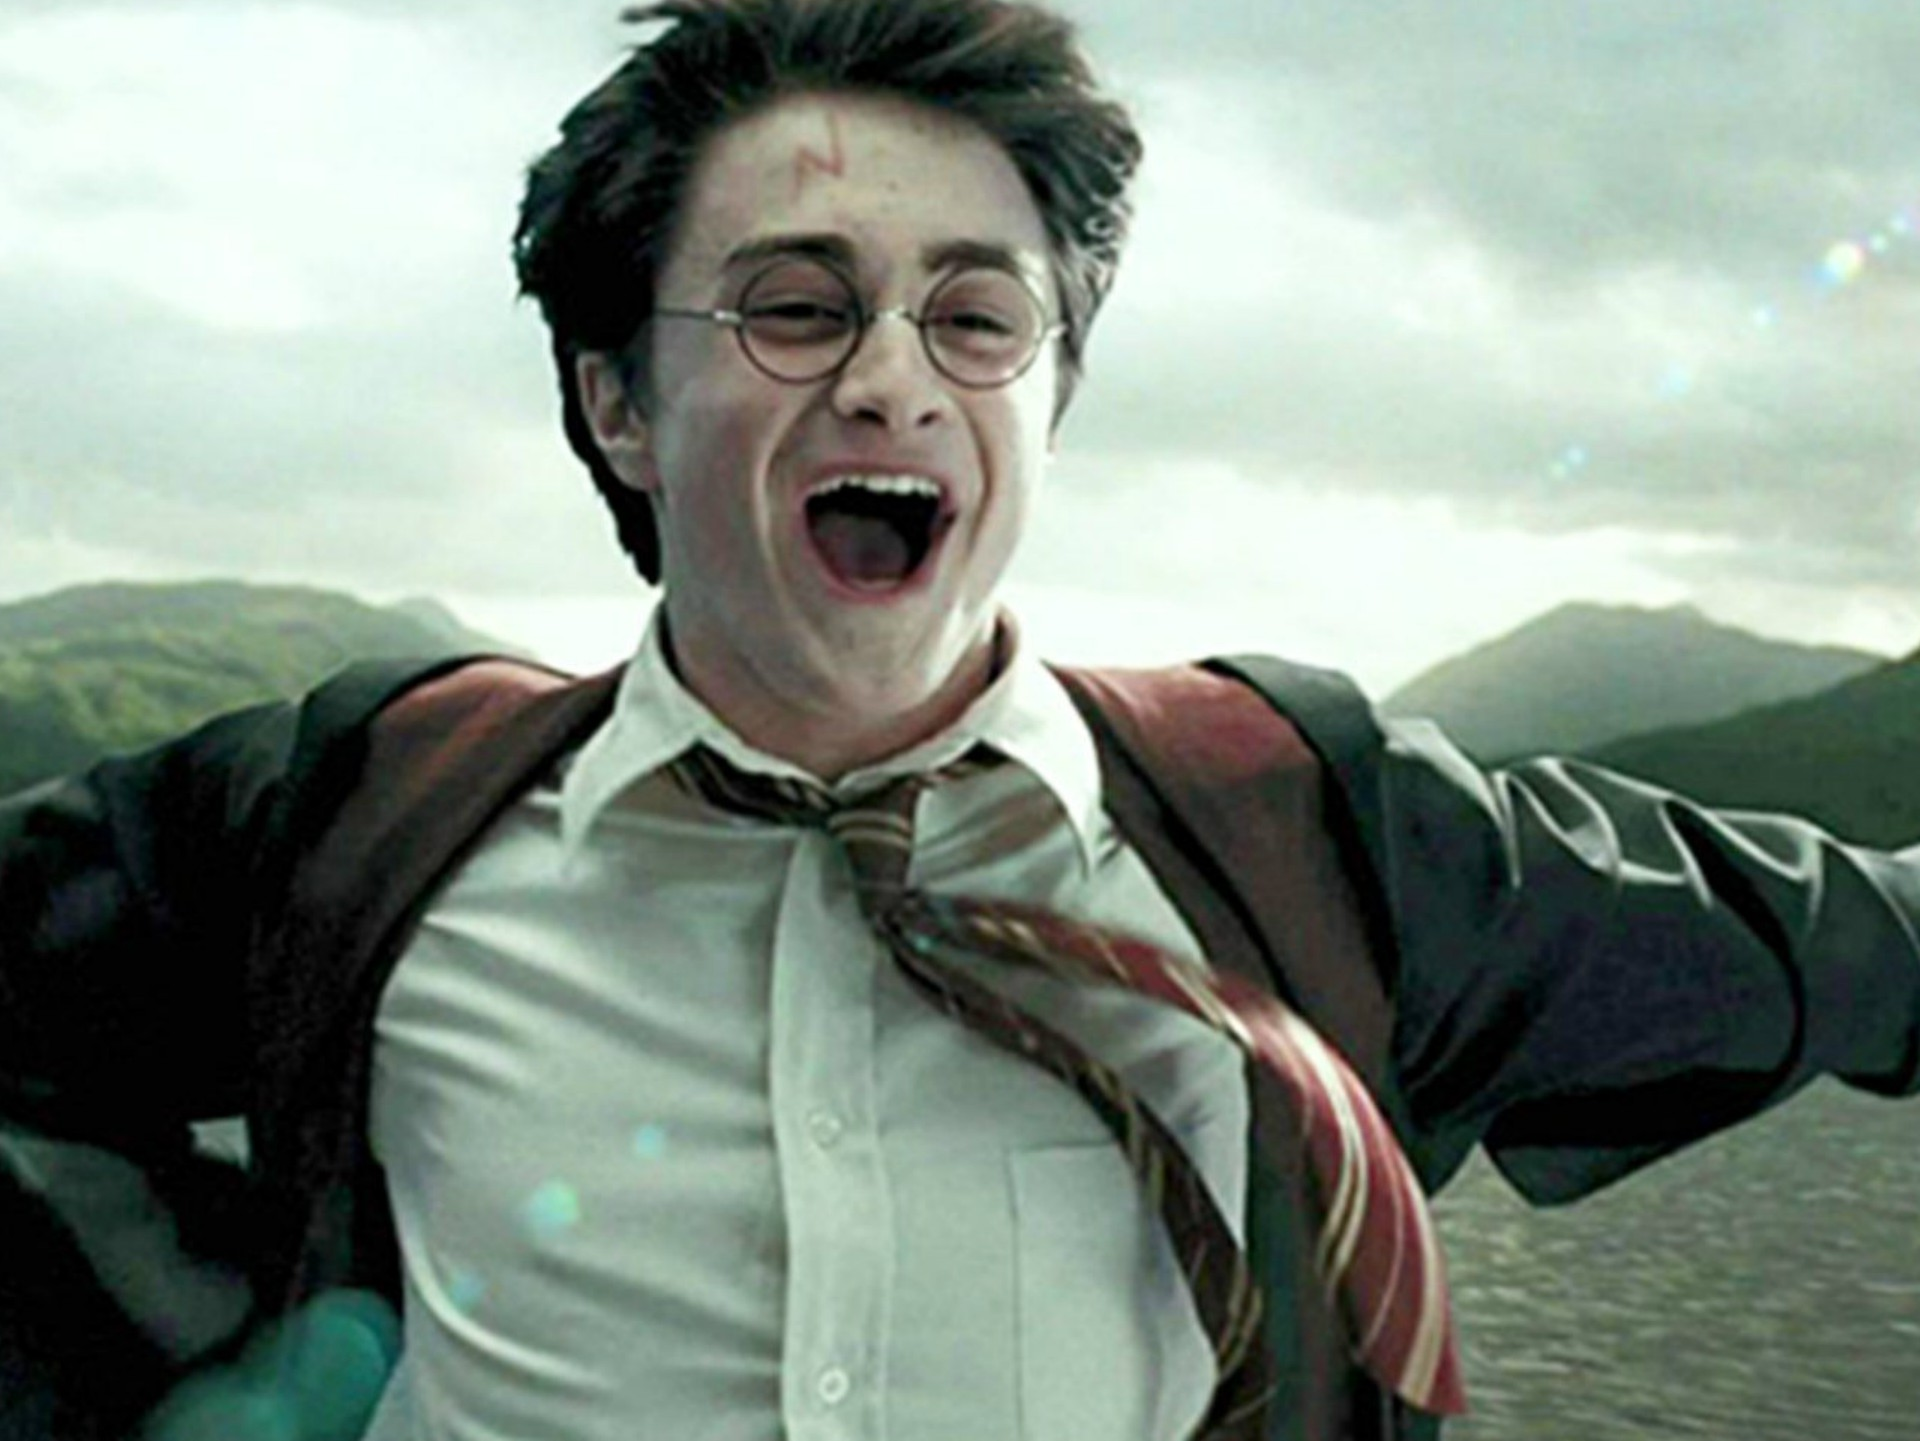 Harry Potter river cruise to set sail on River Thames